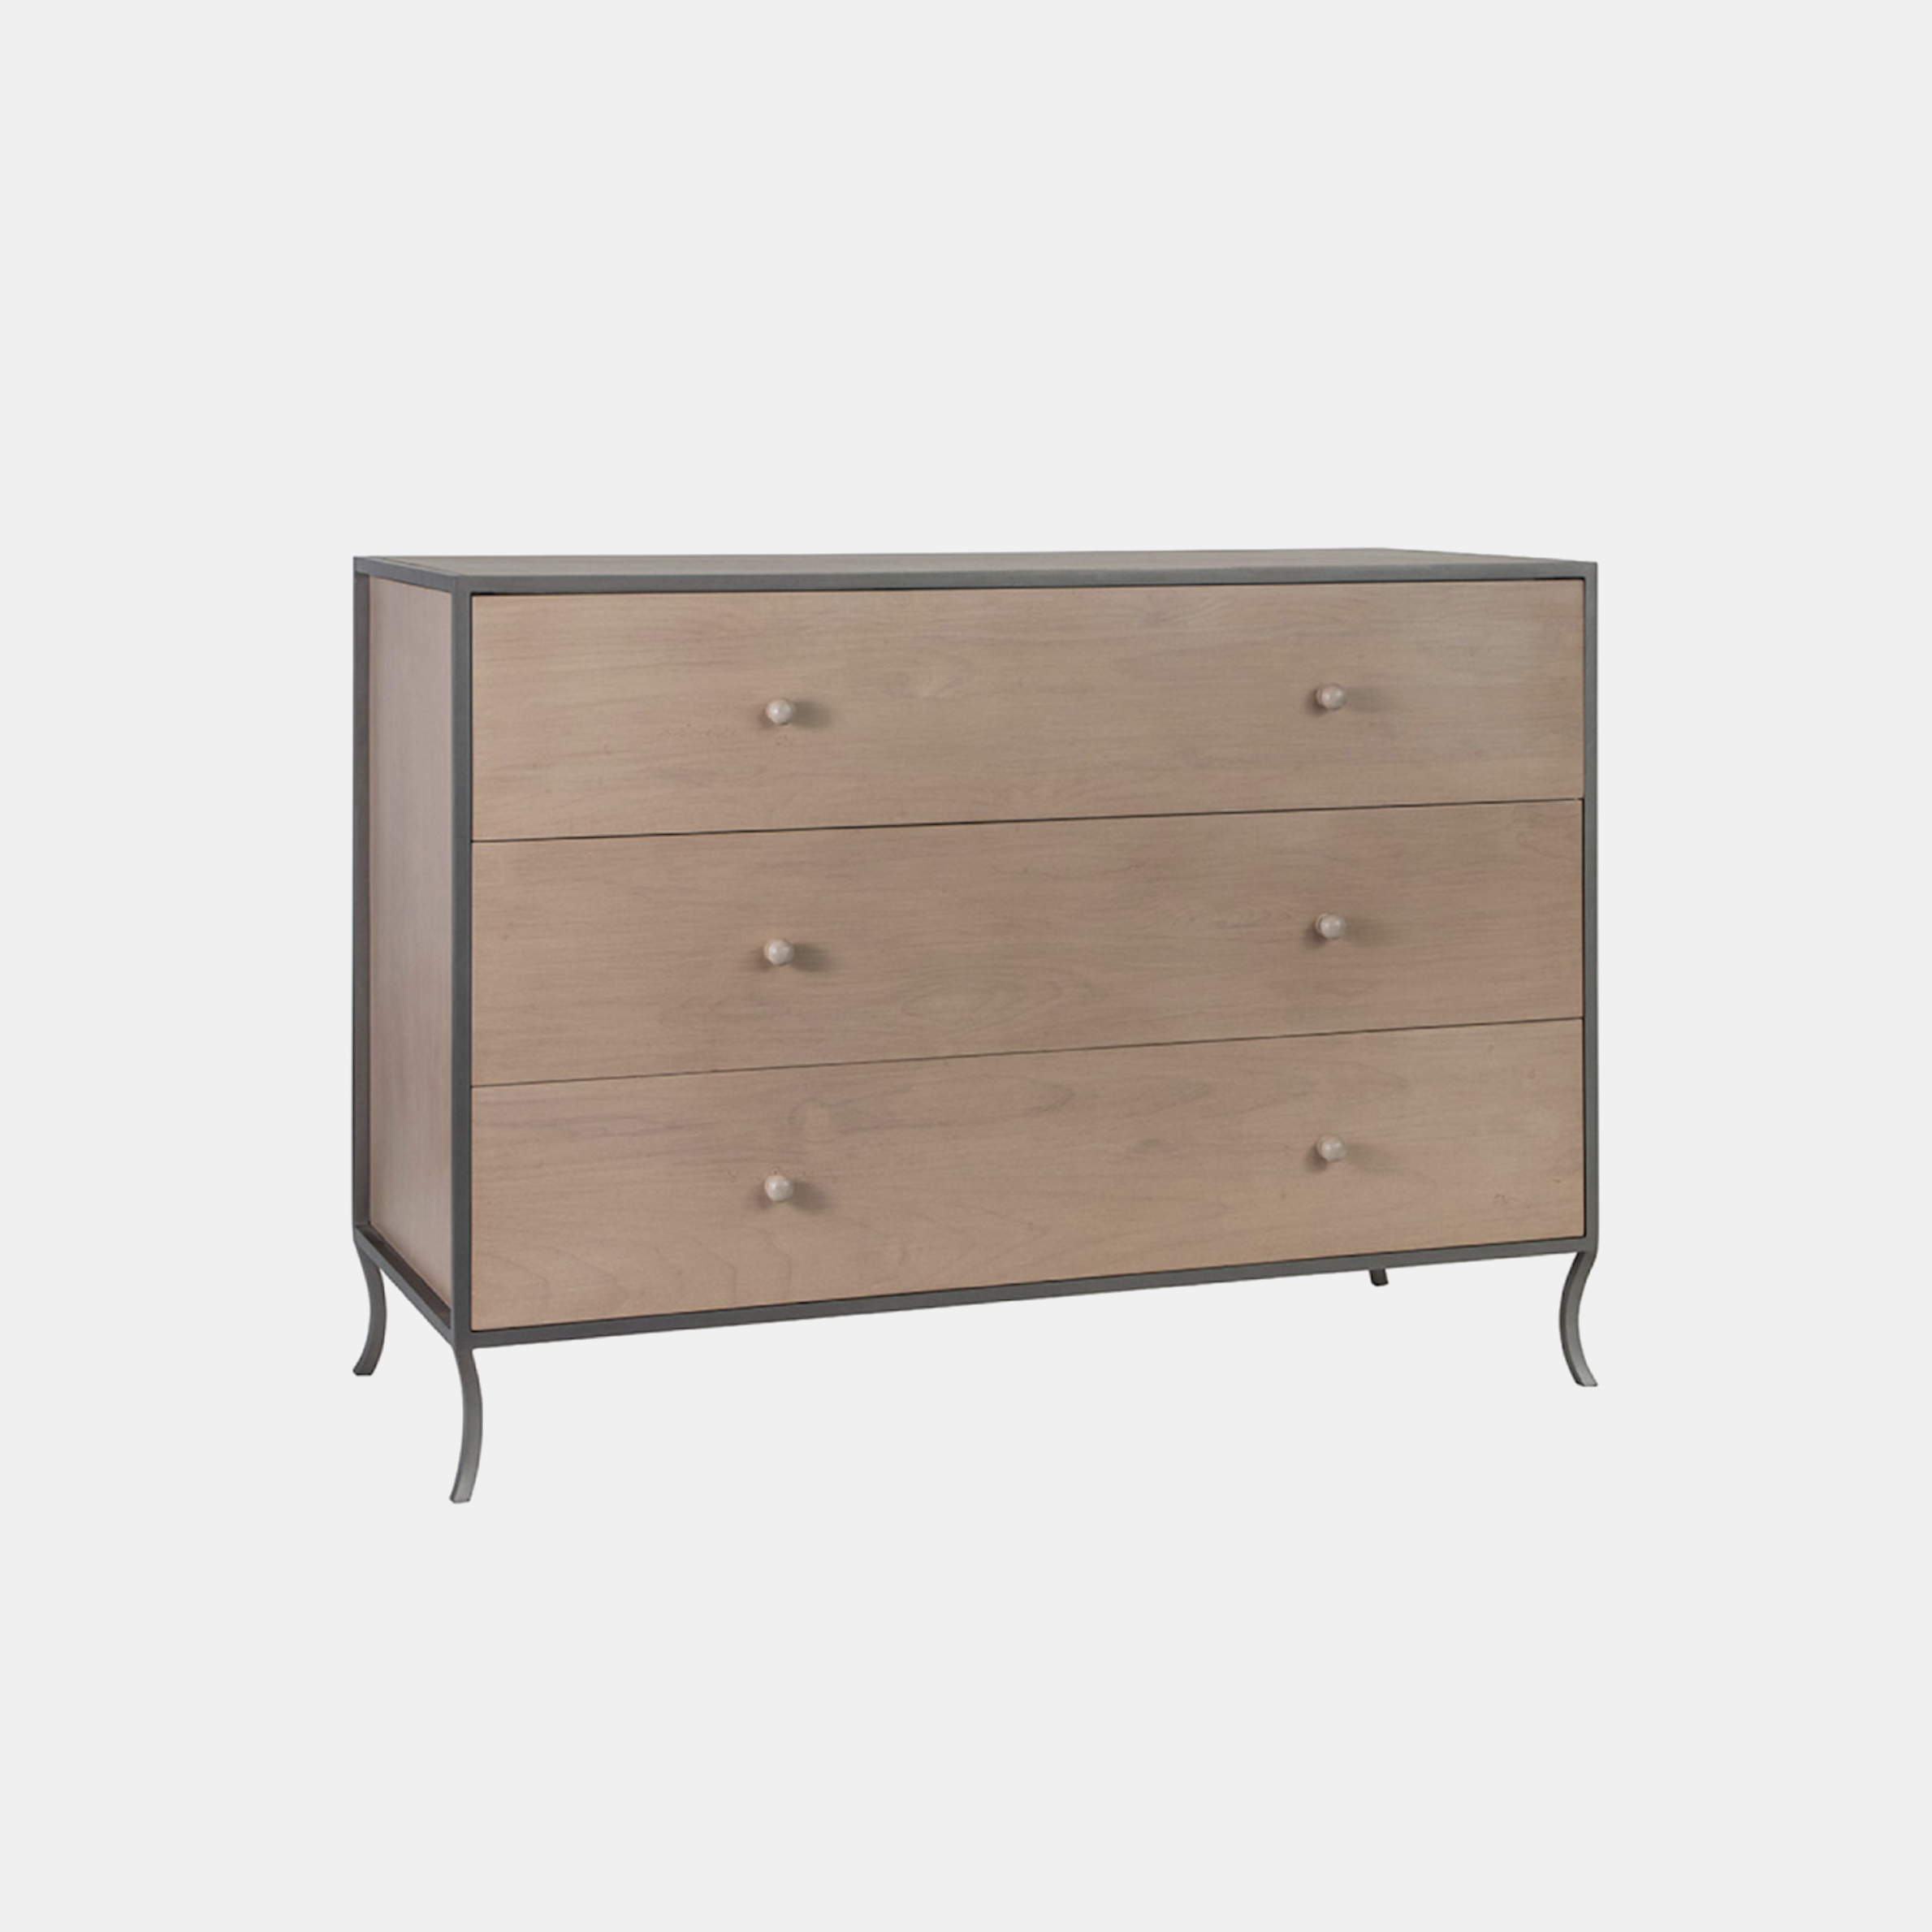 "Milla 3-Drawer Dresser  49""l x 20""d x 34""h Available in several wood and metal finishes. Also available as 6-drawer dresser, side table, small side table, and side table with drawers. SKU9987RFH"